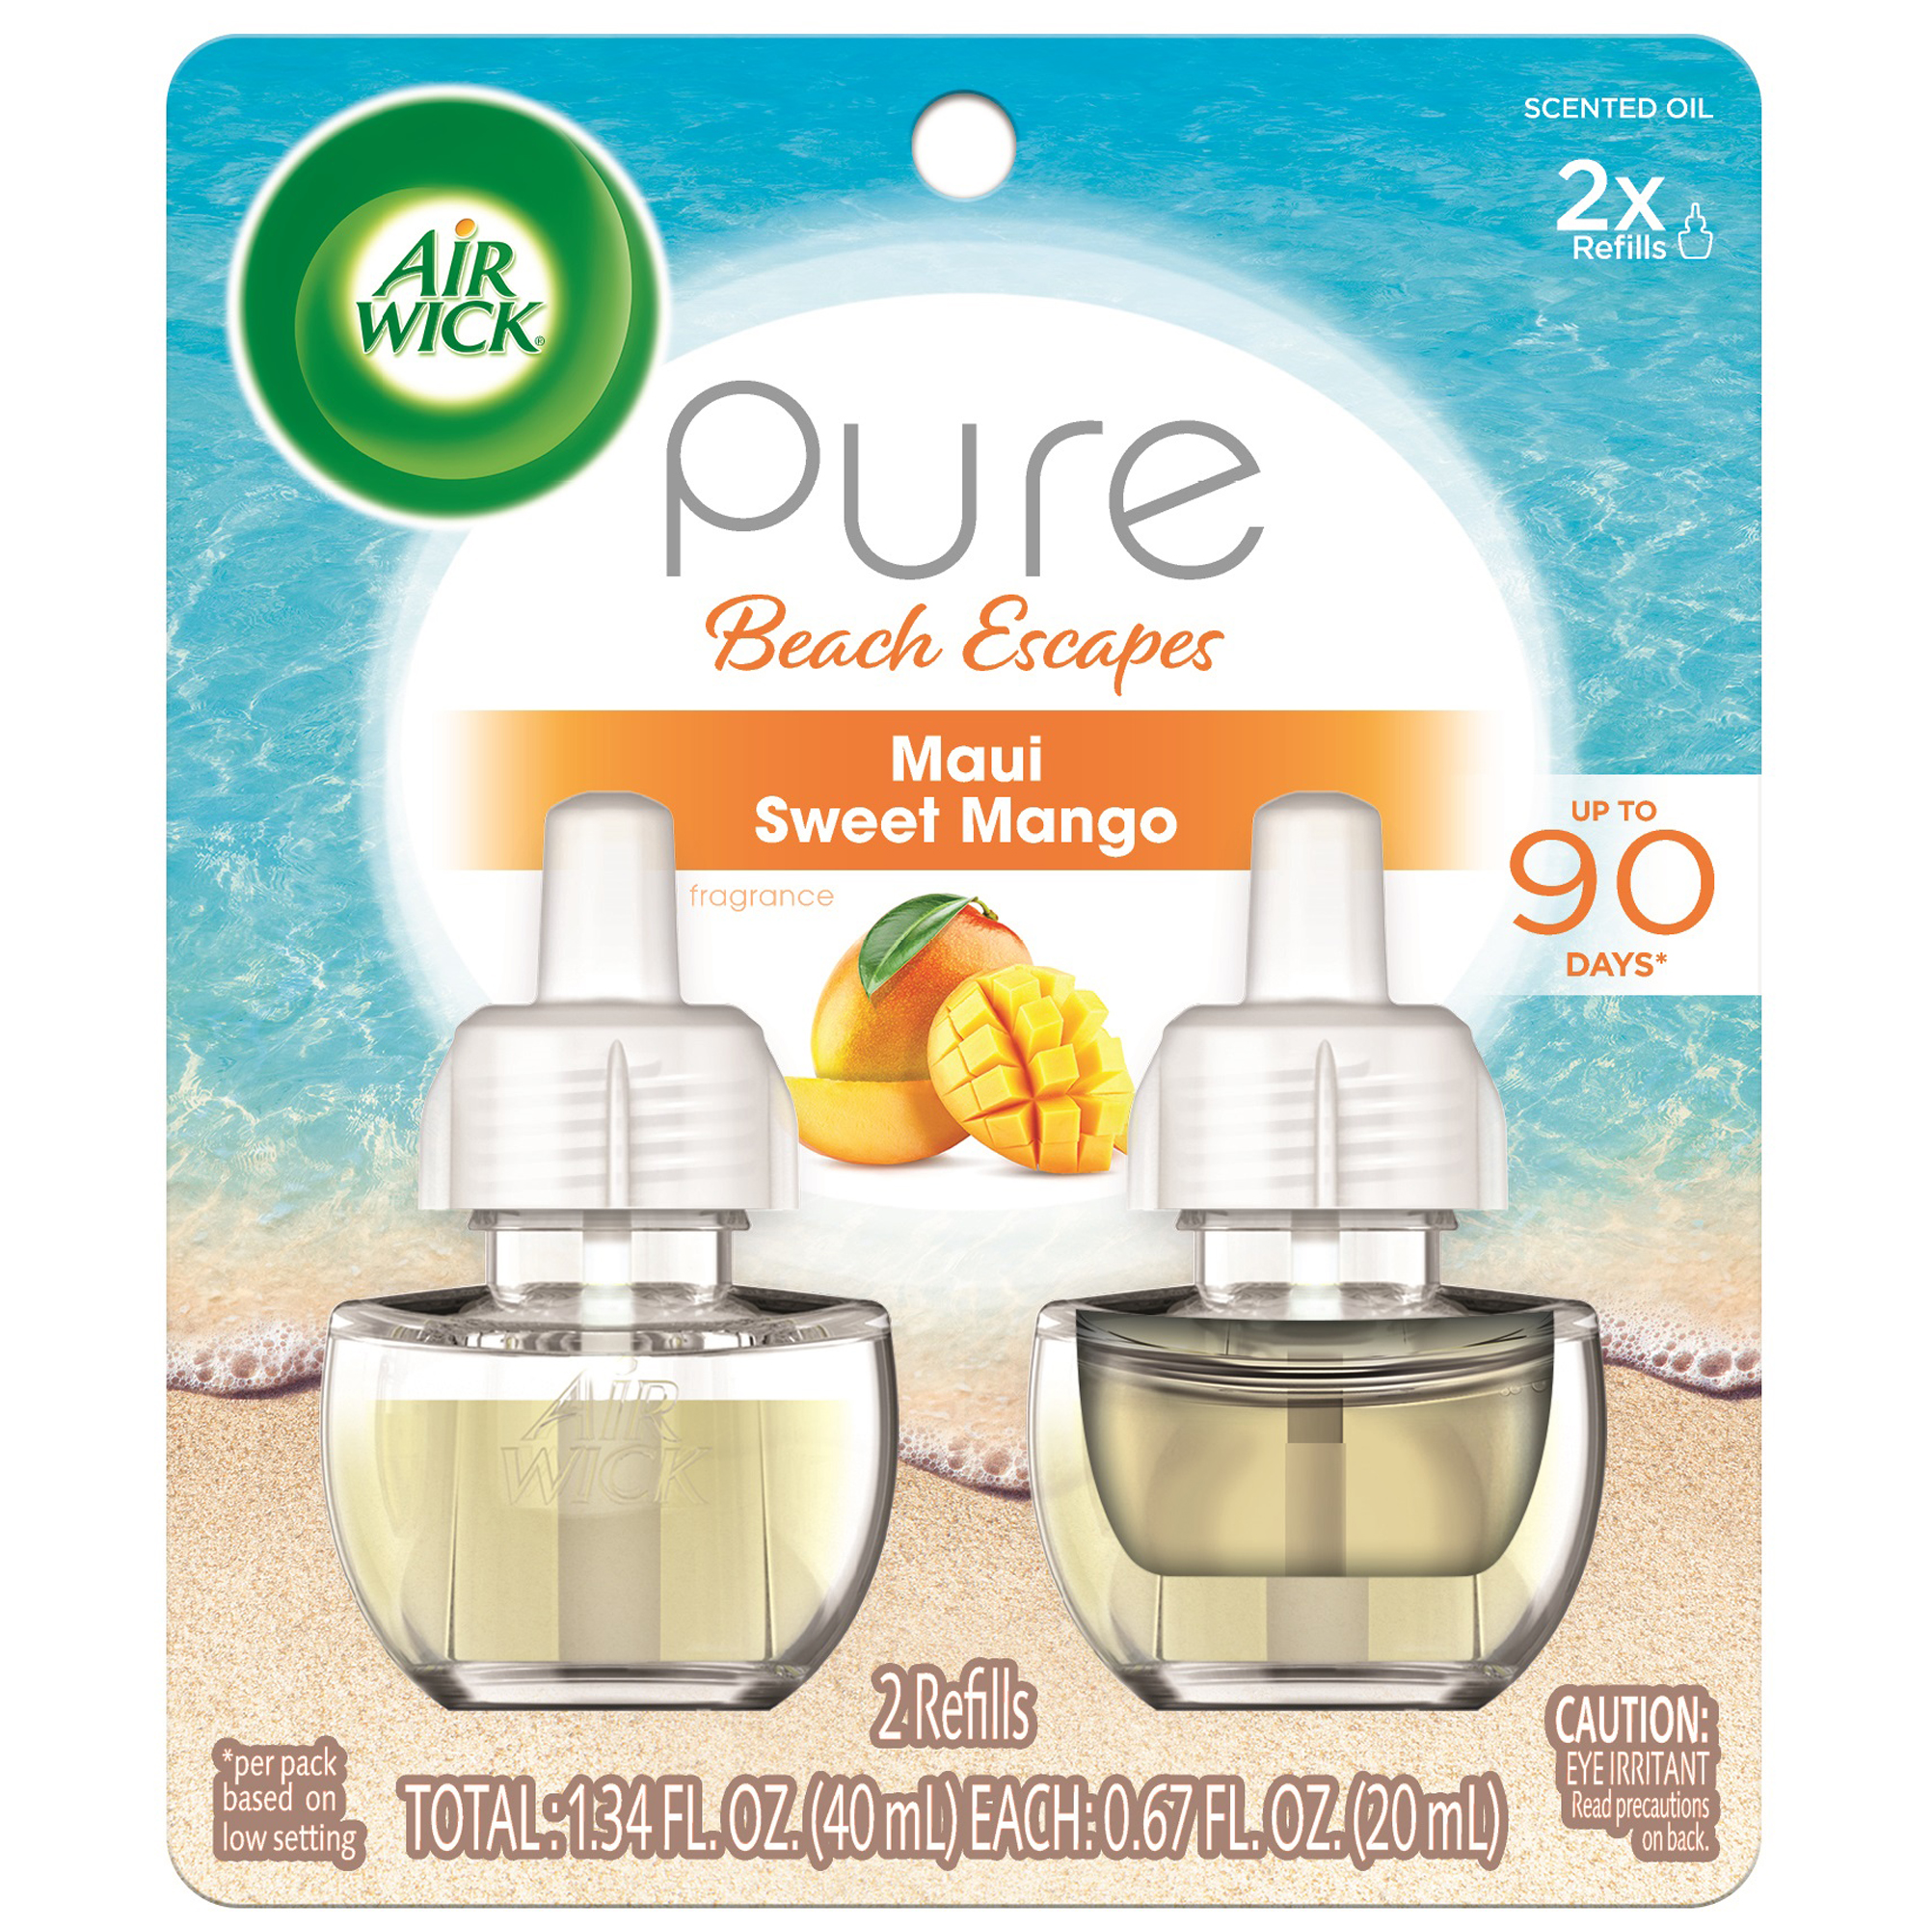 Air Wick Pure Scented Oil 2 Refills, Maui Sweet Mango, (2x0.67oz), Air Freshener